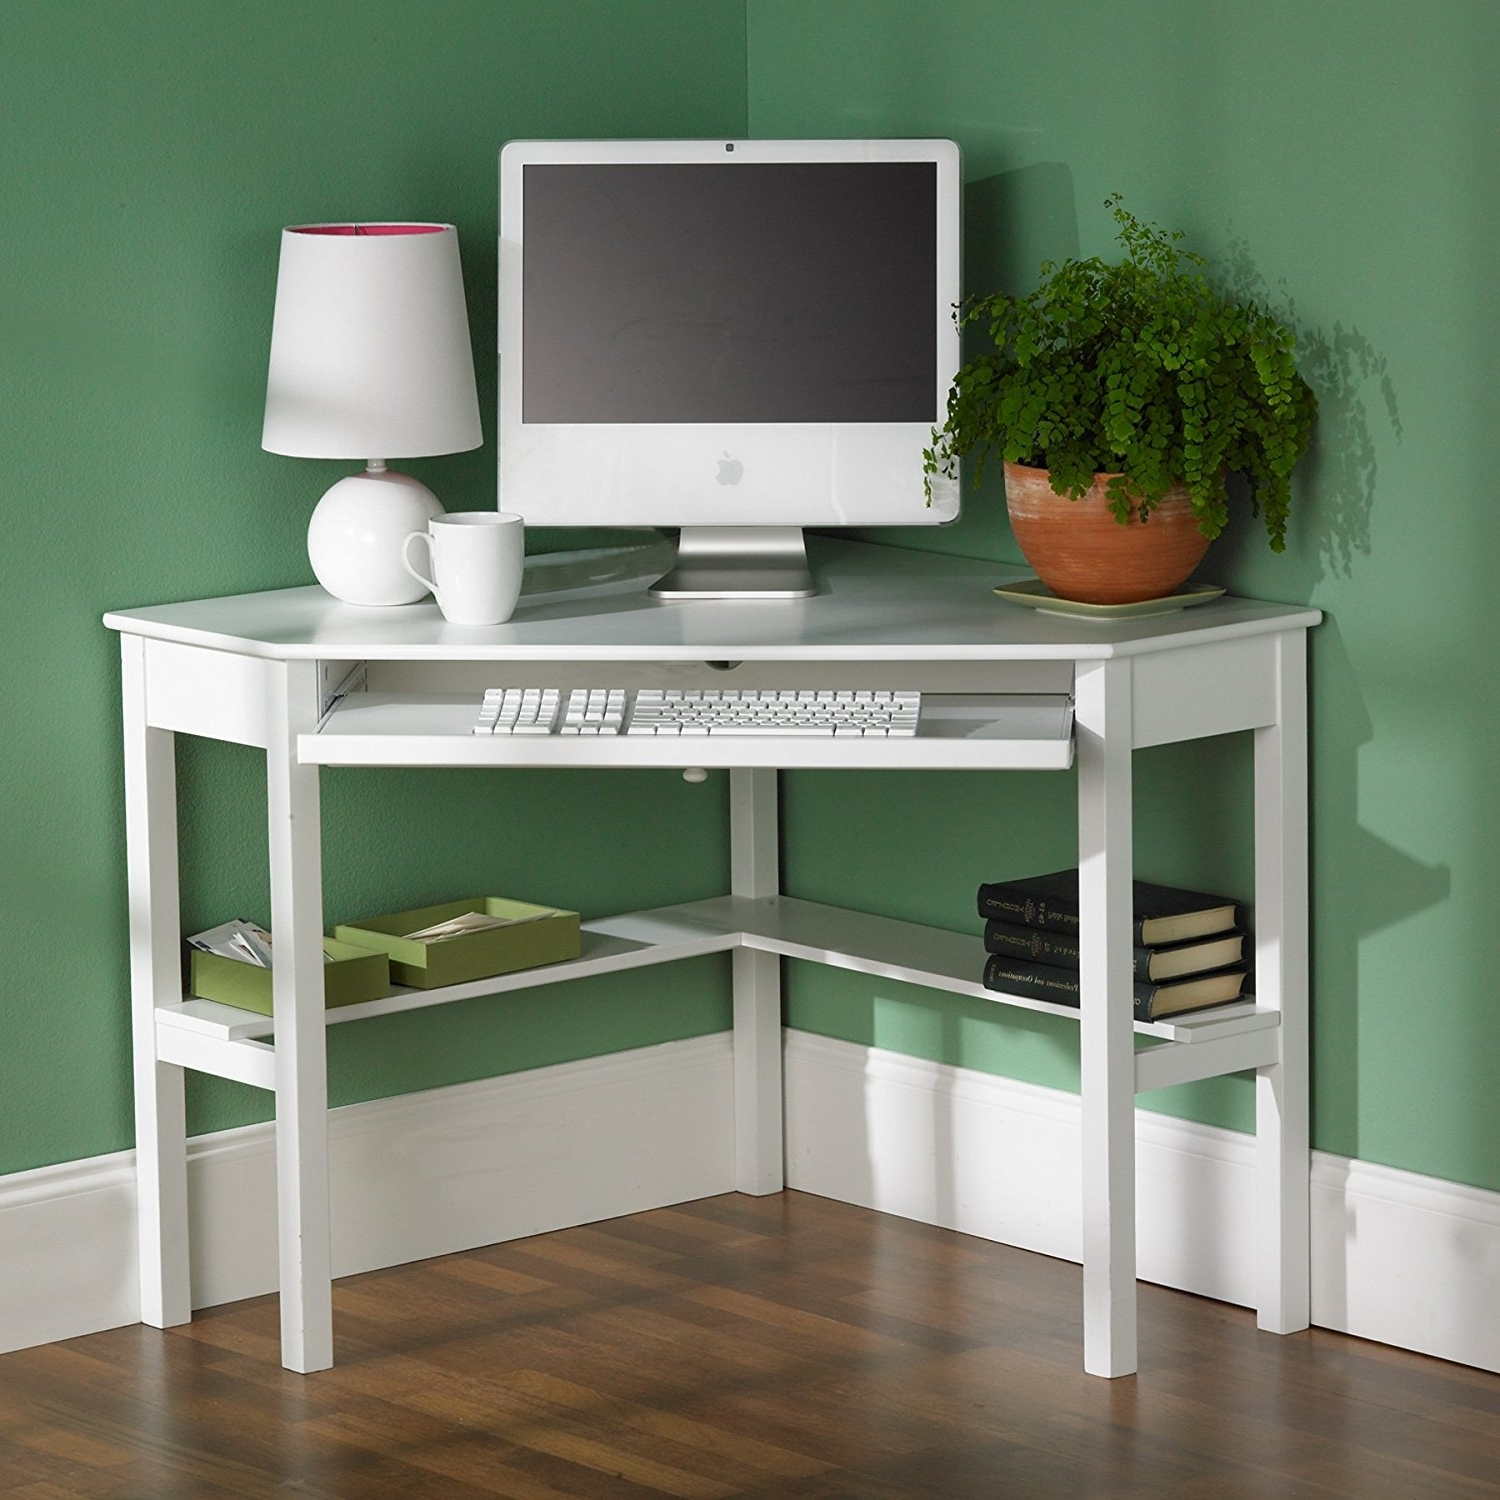 Most Recently Released Computer Desks At Target Throughout 69 Most Outstanding Keyboard Drawer Oak Desk Black Home Ergonomic (View 2 of 20)